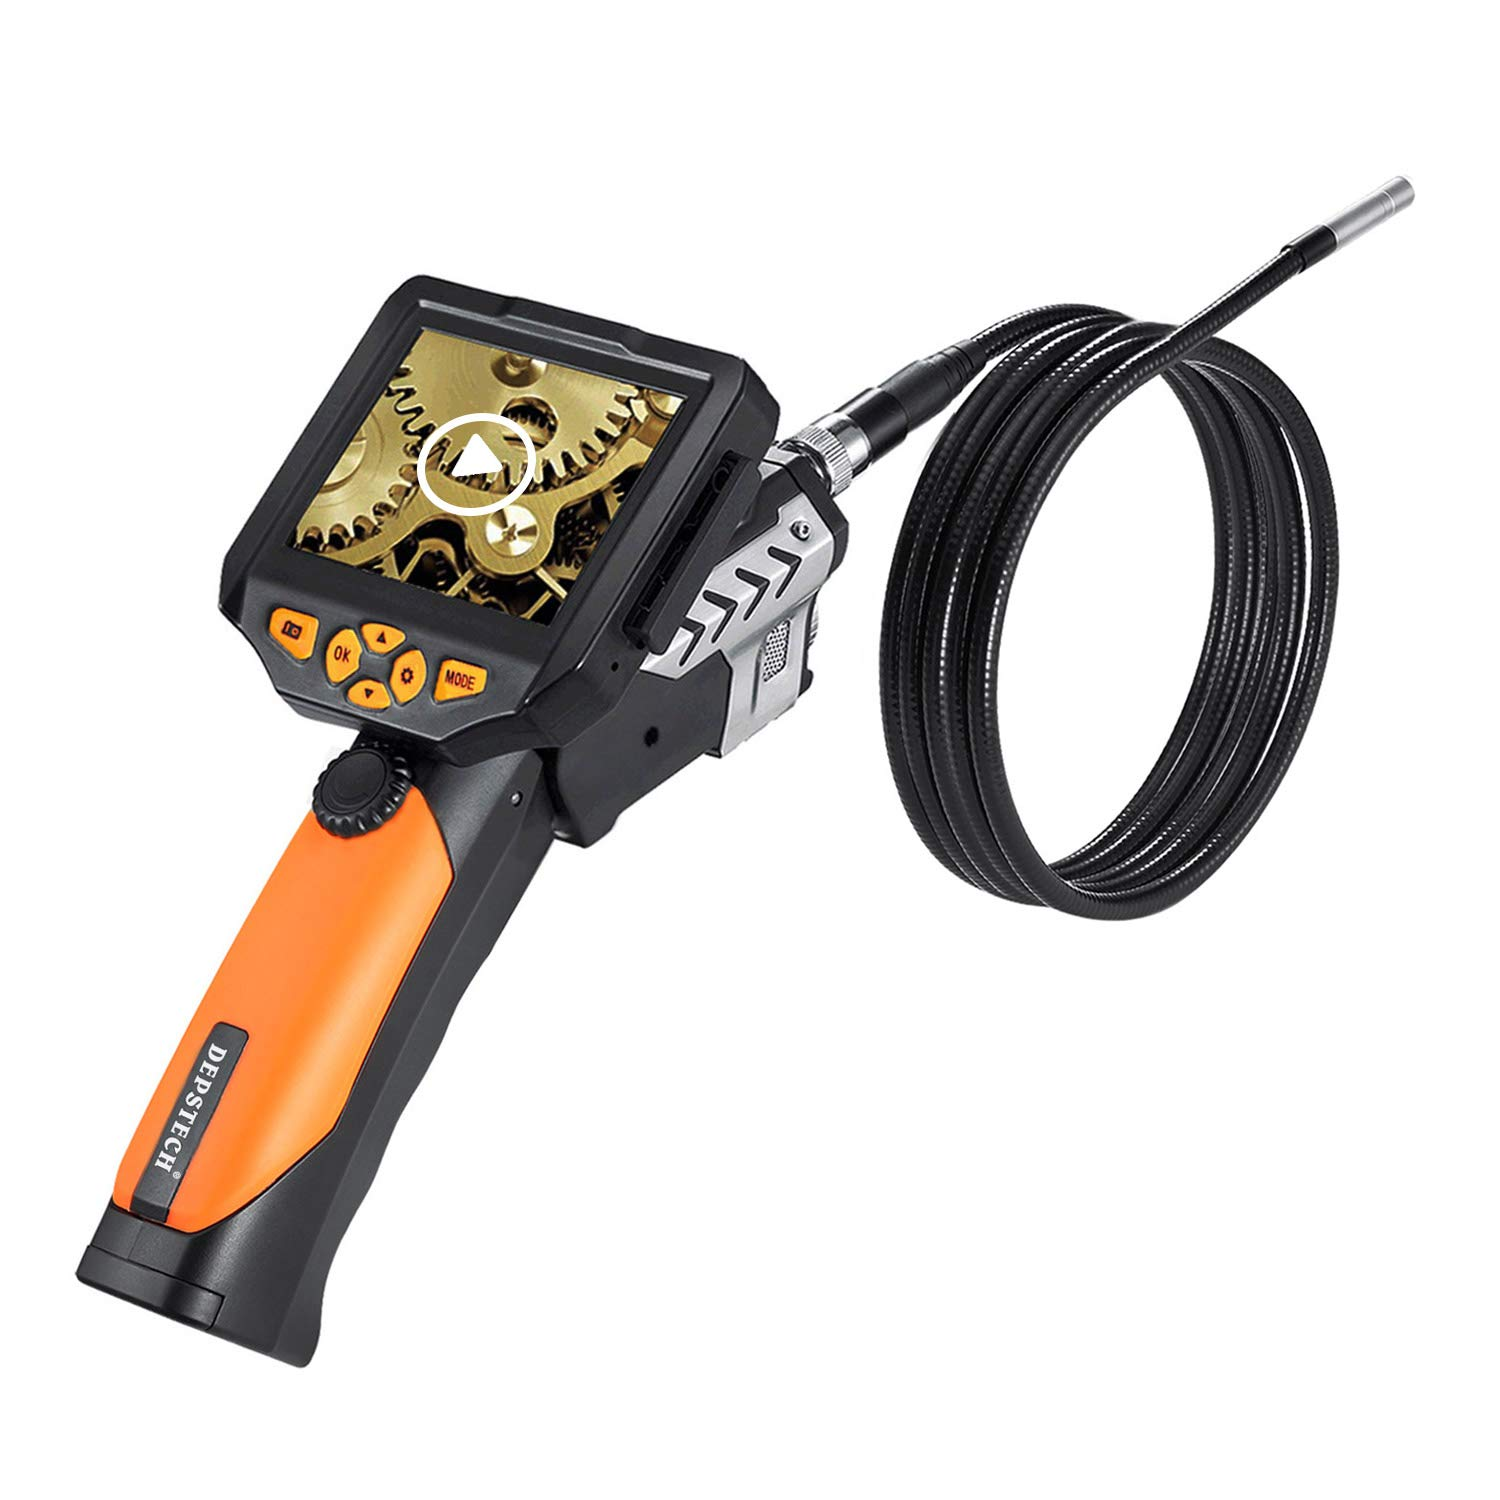 DEPSTECH 10 FT Waterproof LCD Borescope